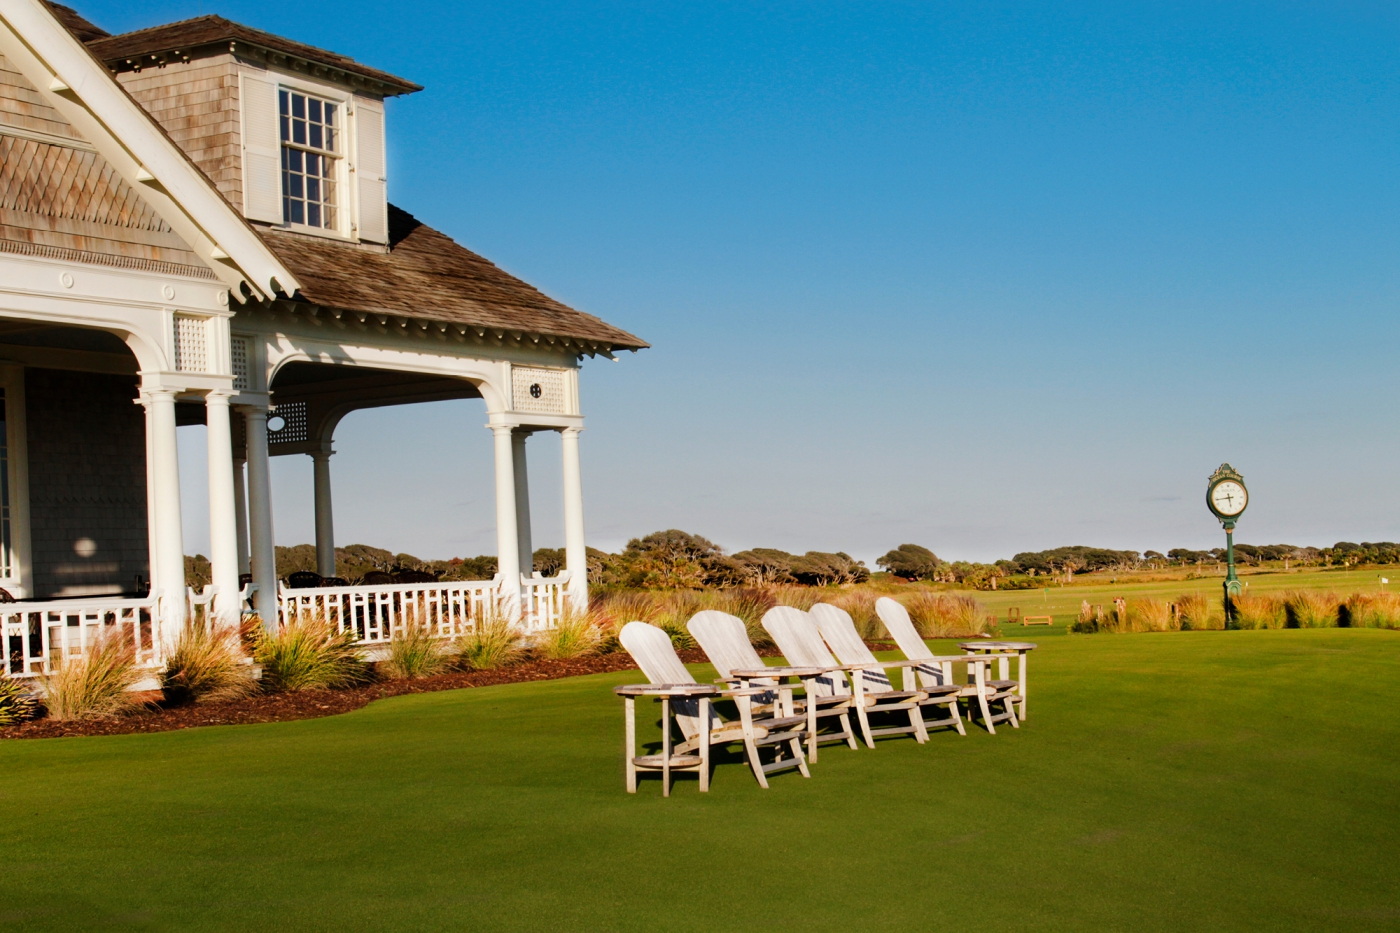 Kick back and enjoy the scenic view from the Ocean Course clubhouse on Kiawah Island.